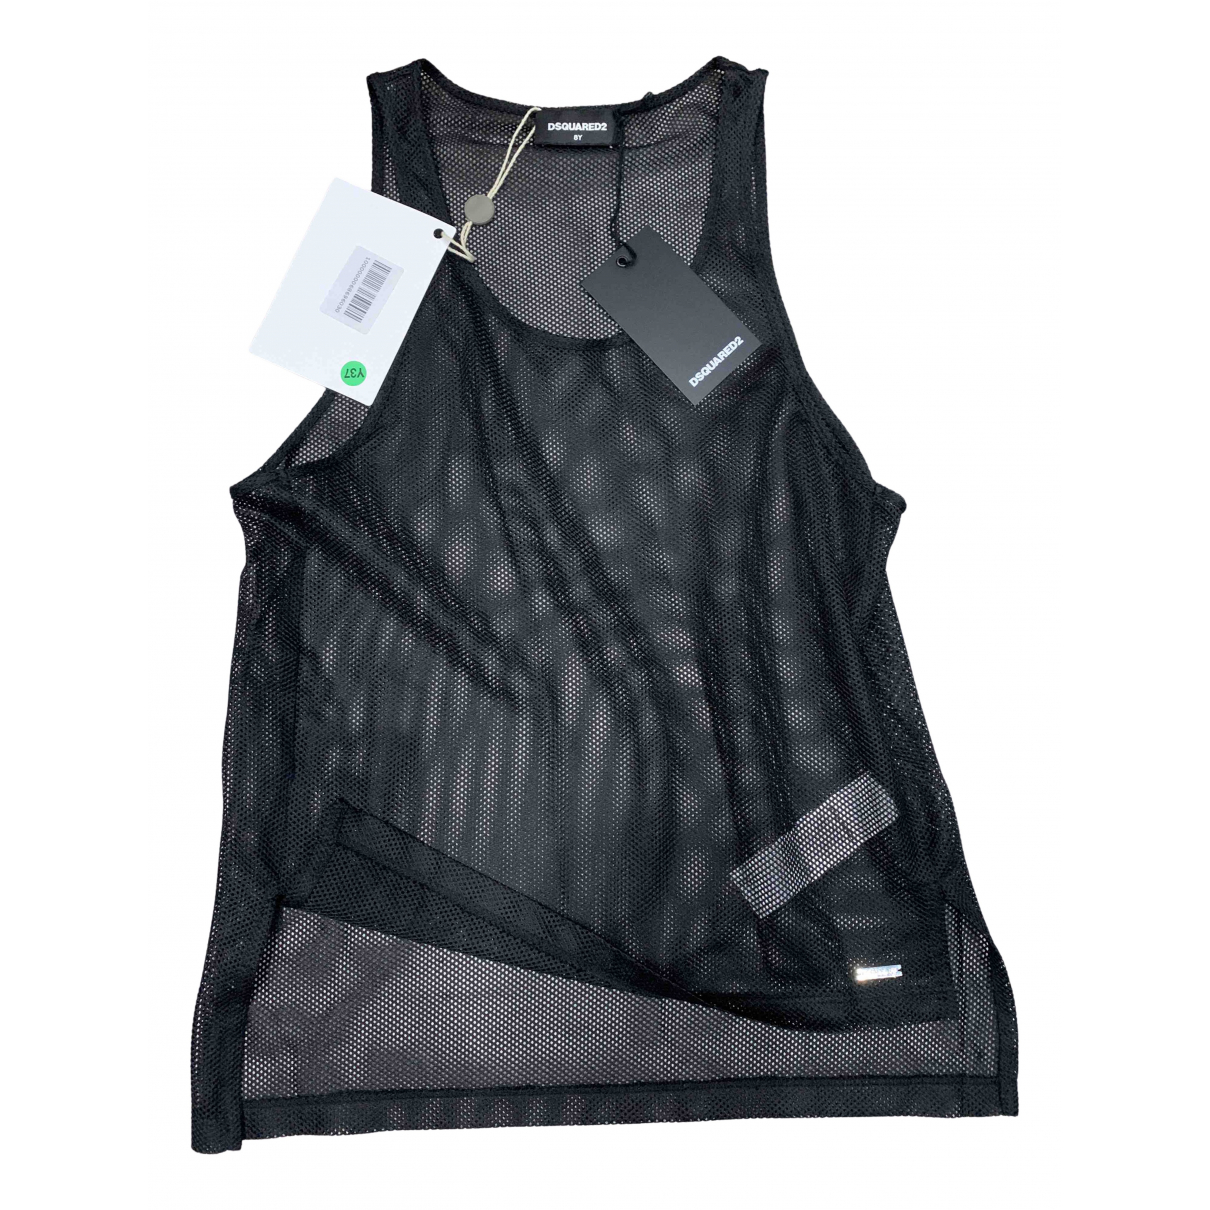 Dsquared2 \N Black  top for Kids 8 years - up to 128cm FR